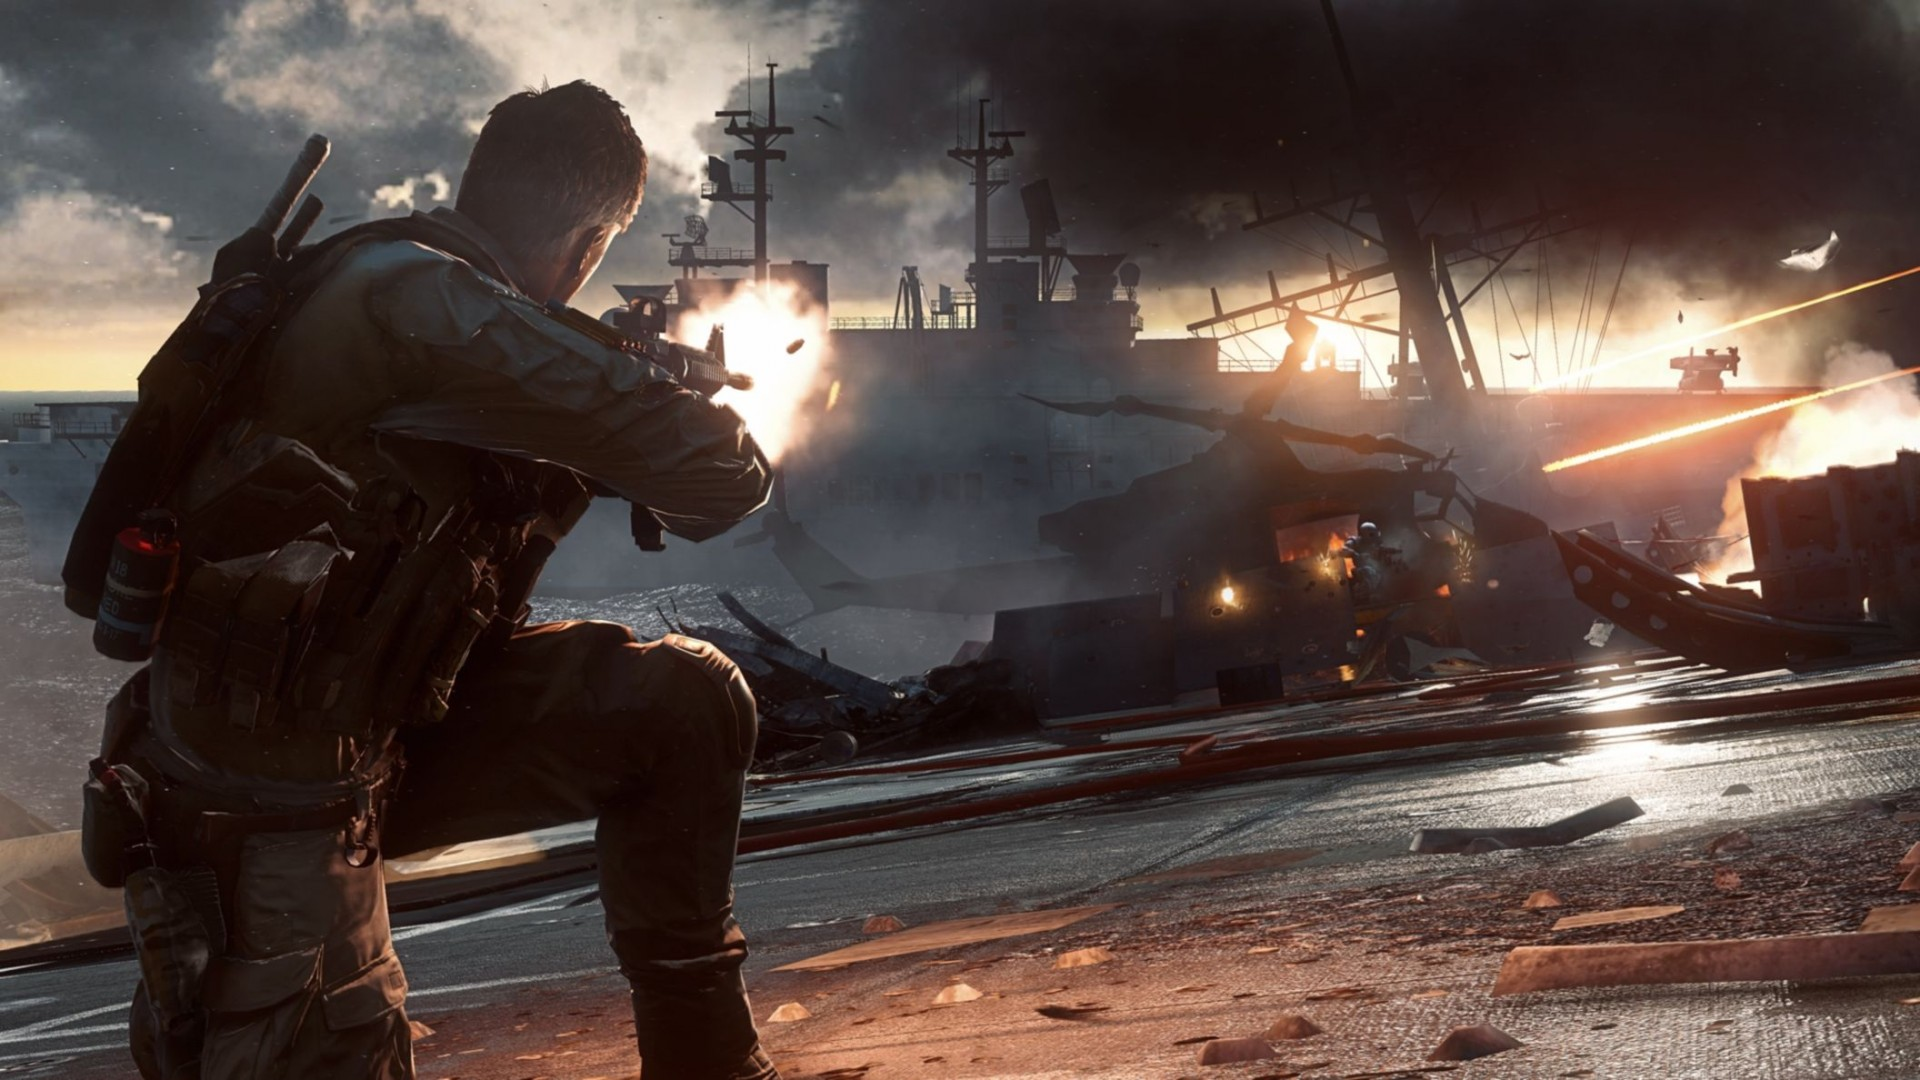 Battlefield 4 Sniper Download Wallpaper